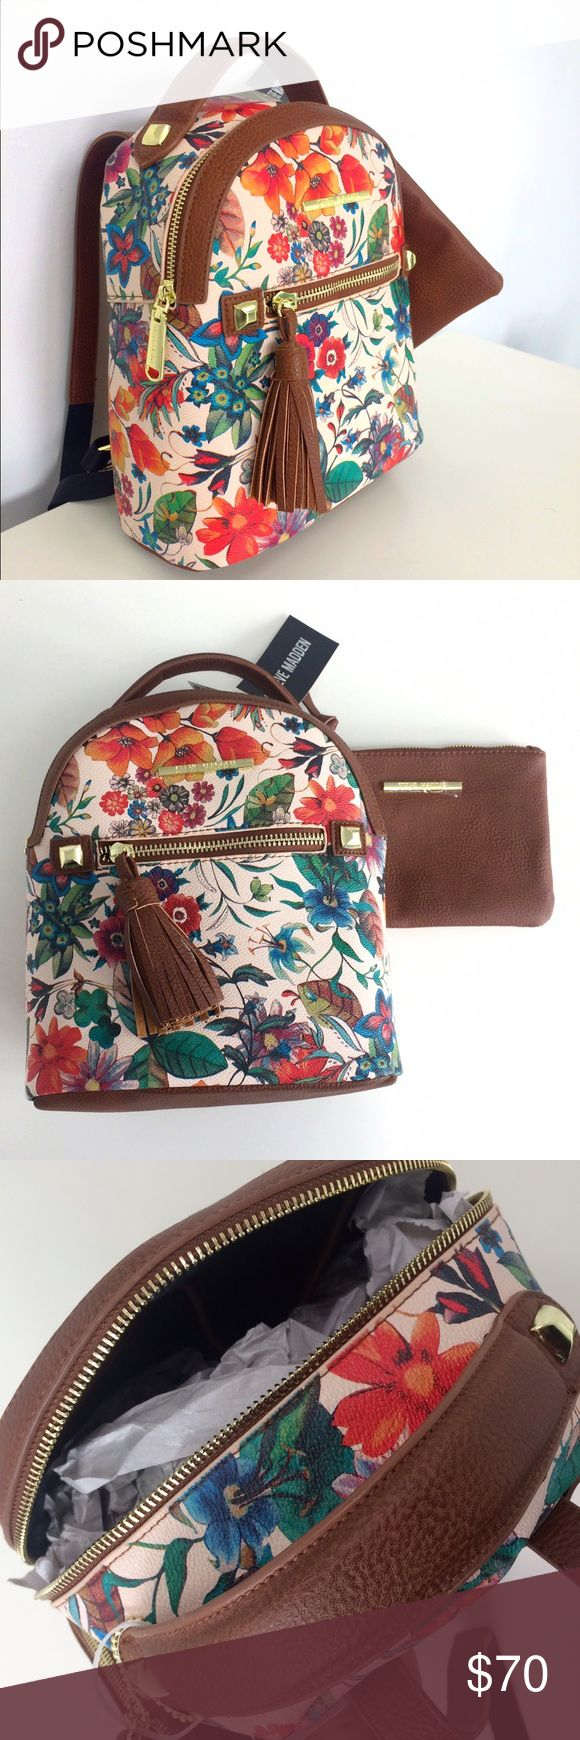 Steve Madden Floral backpack Small backpack, perfect for spring! Beautiful, colorful floral design 💐🌸🌼🌷🌹 NWT and comes with a small brown clutch Steve Madden Bags Backpacks